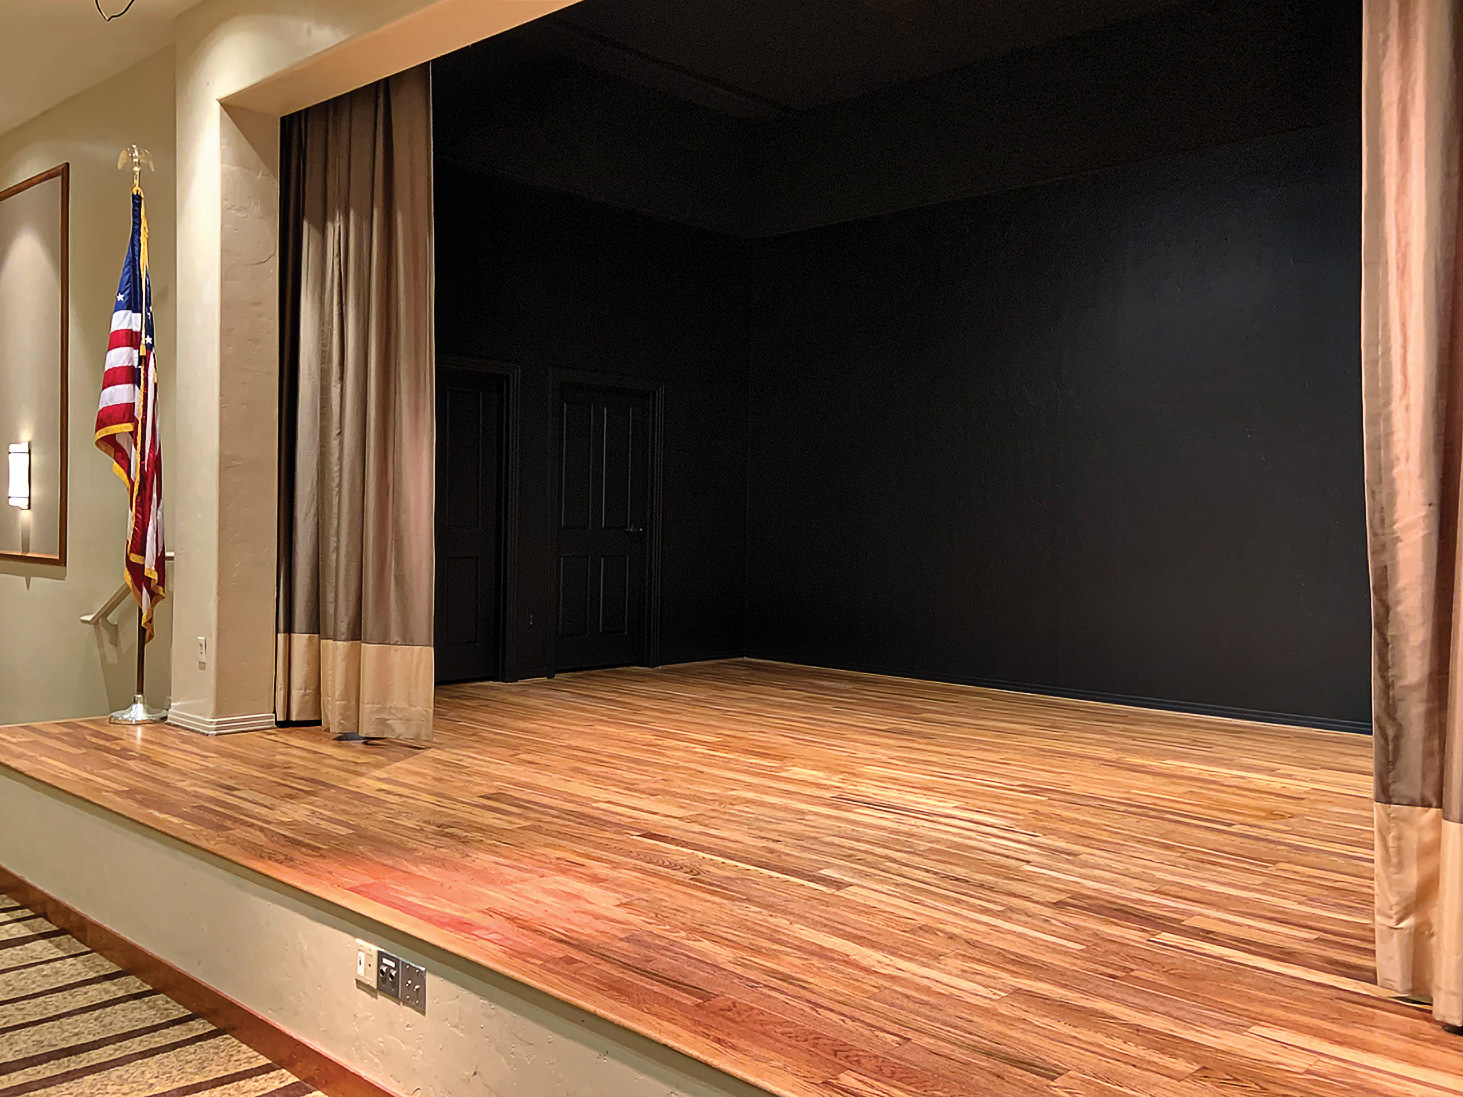 The newly painted MVCC stage will spotlight performers. (Photo by Shawne Cryderman)